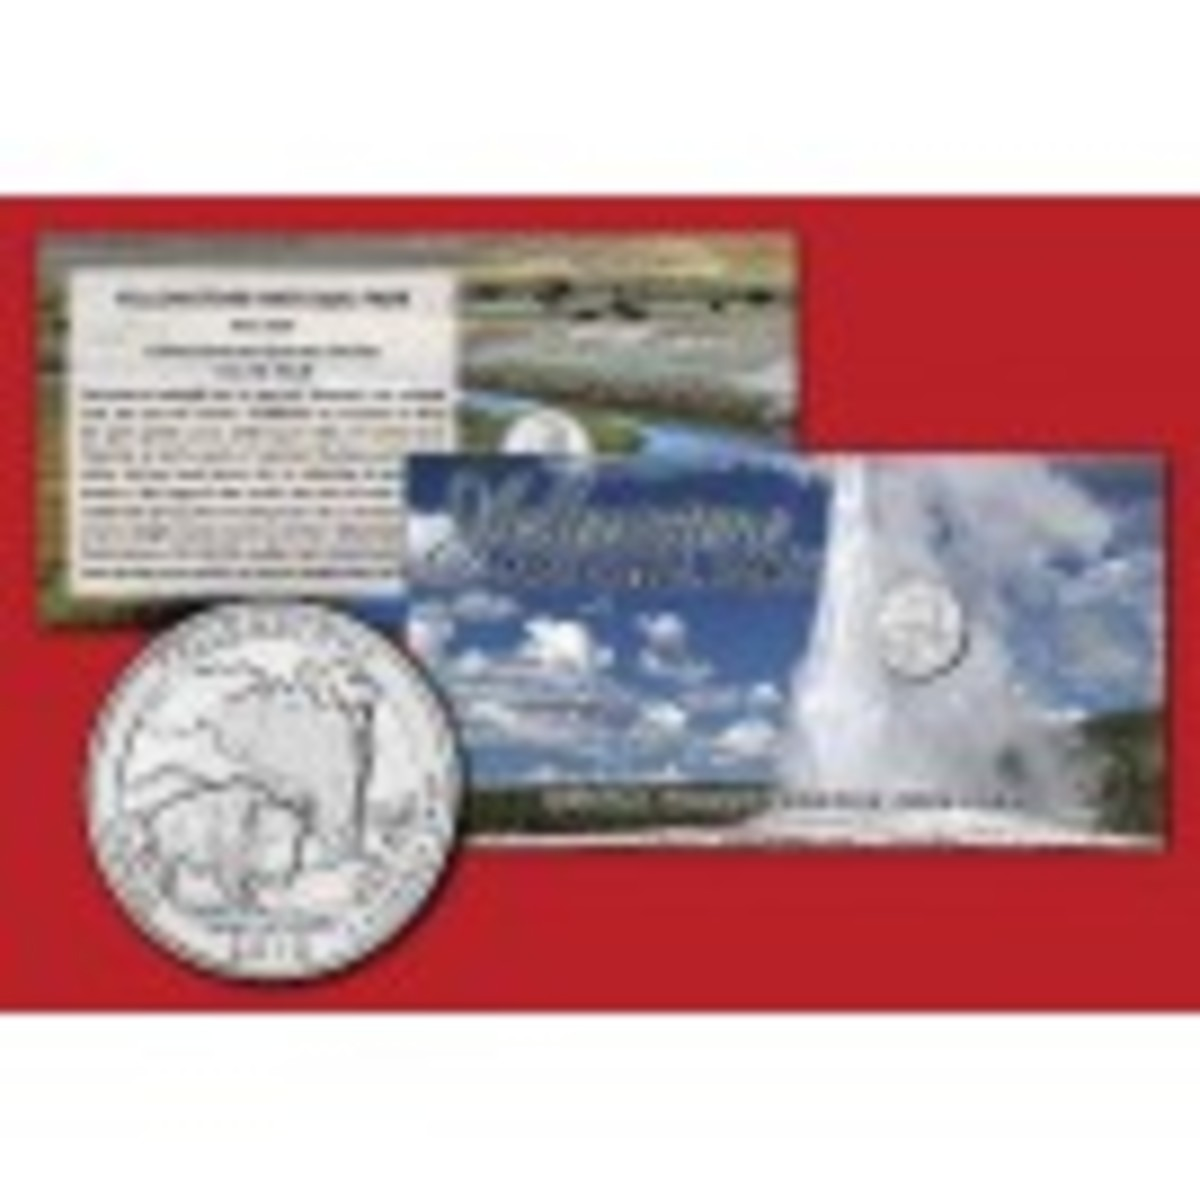 Yellowstone National Park Coin Card with Quarter Dollar